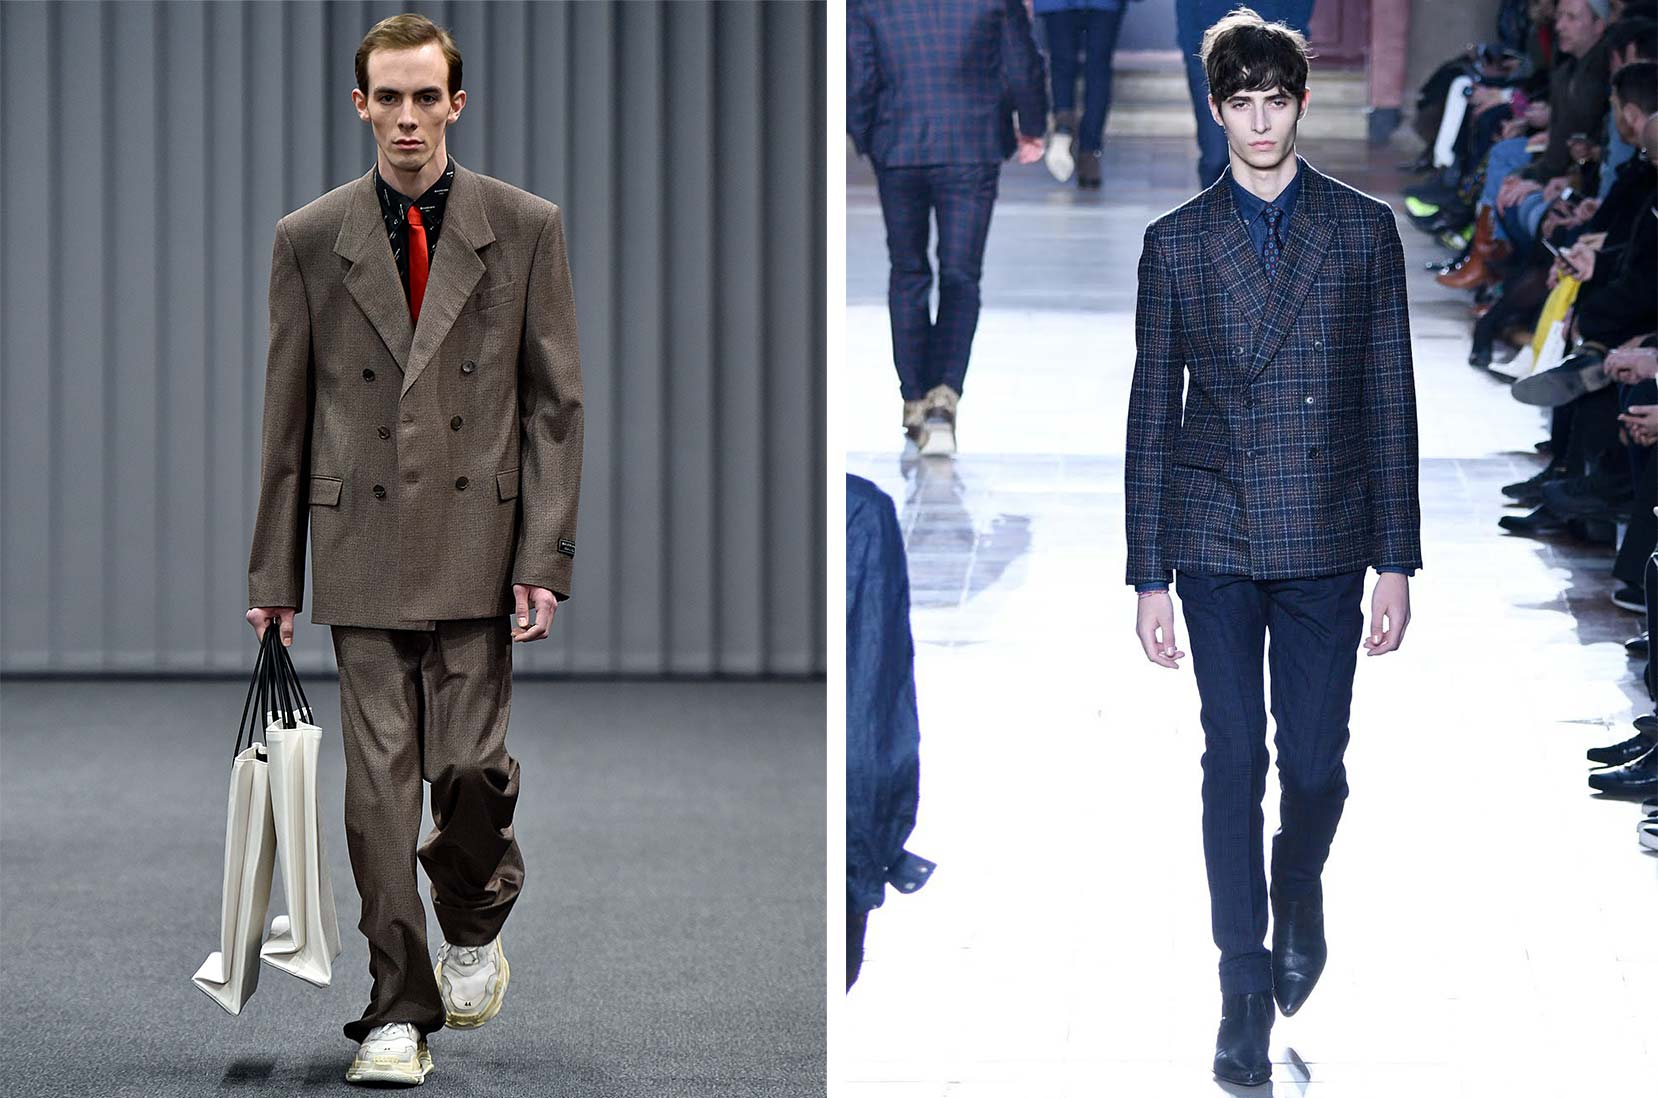 Balenciaga Victor ©VIRGILE/Gamma-Rapho/Getty Images                      Oscar Kindelan på catwalken under Paul Smiths motevisning for                                                                                                                herreklær høst/vinter 2017-2018 som var en del av moteuken i Paris                                                                                                                22. januar 2017. (Foto: Peter White / Getty Images)